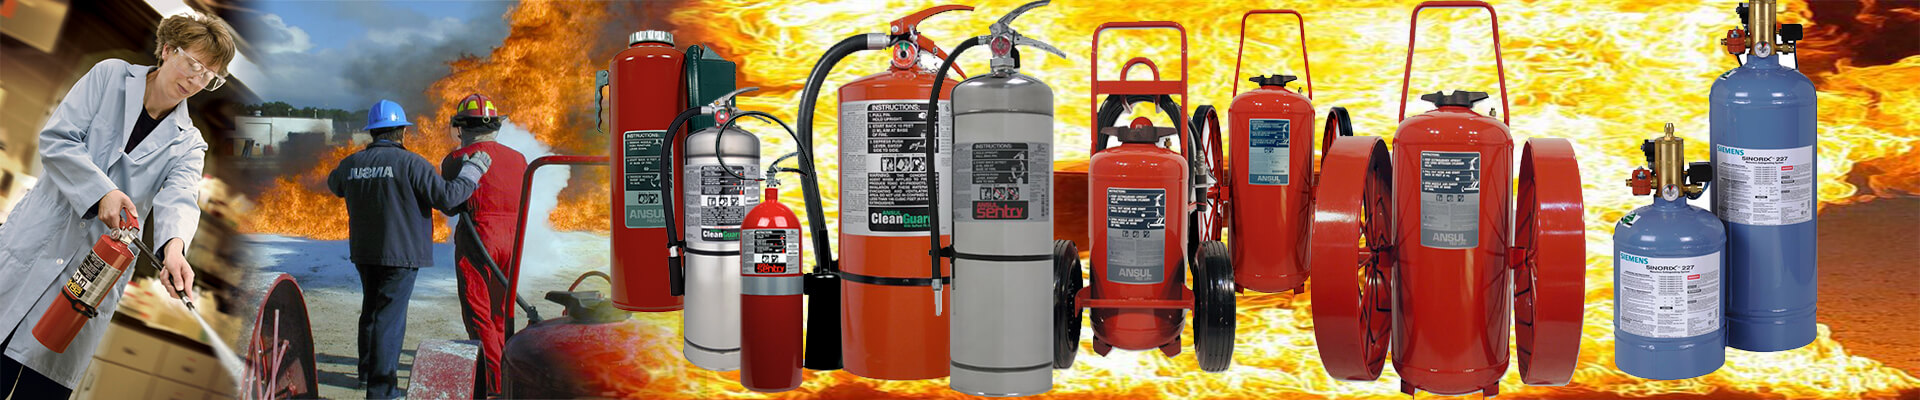 fire safety equipment pictured selection of Ansul fire extinguishers